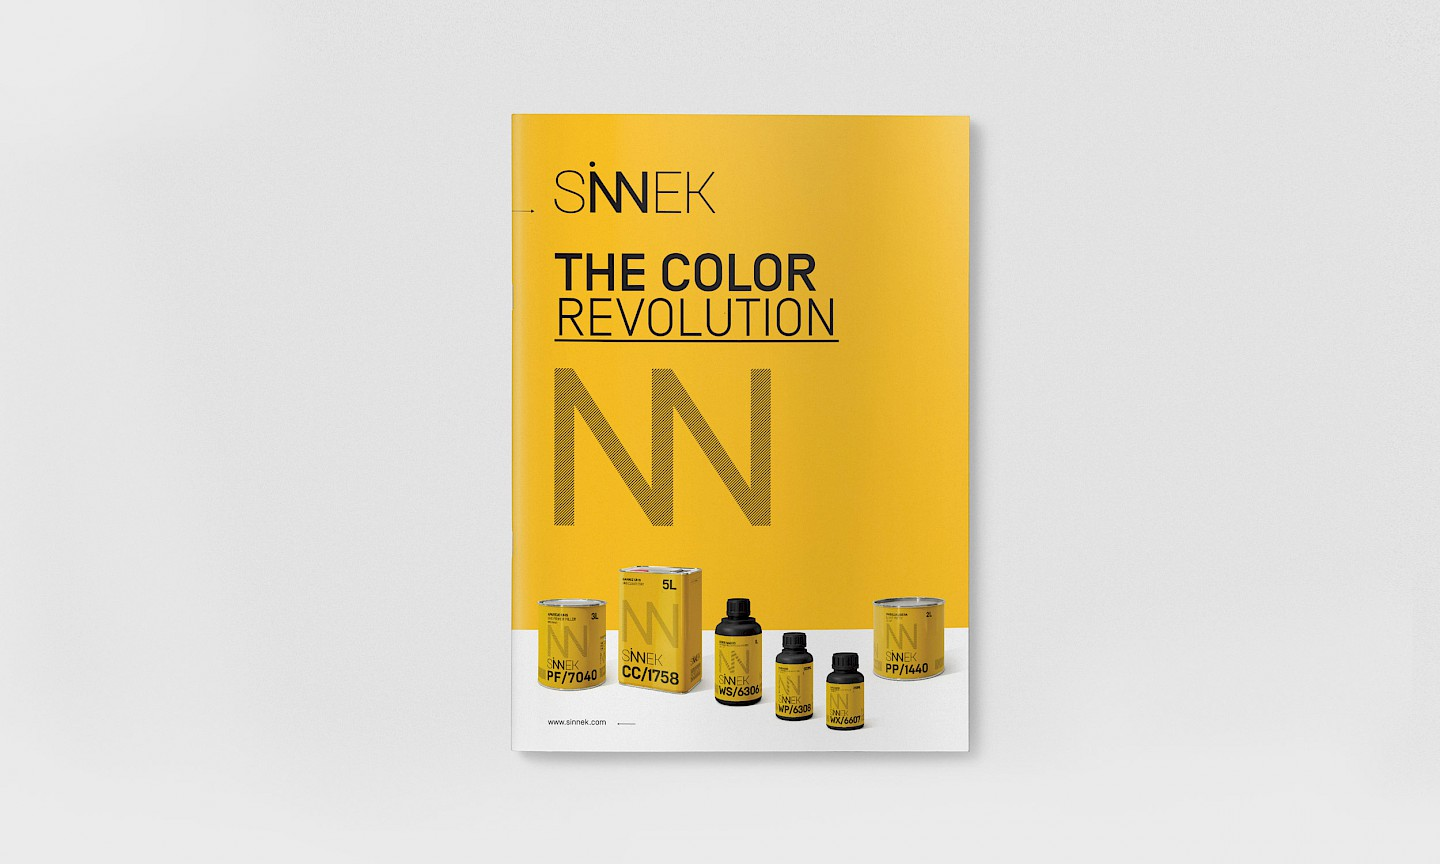 sinnek move branding catalogo